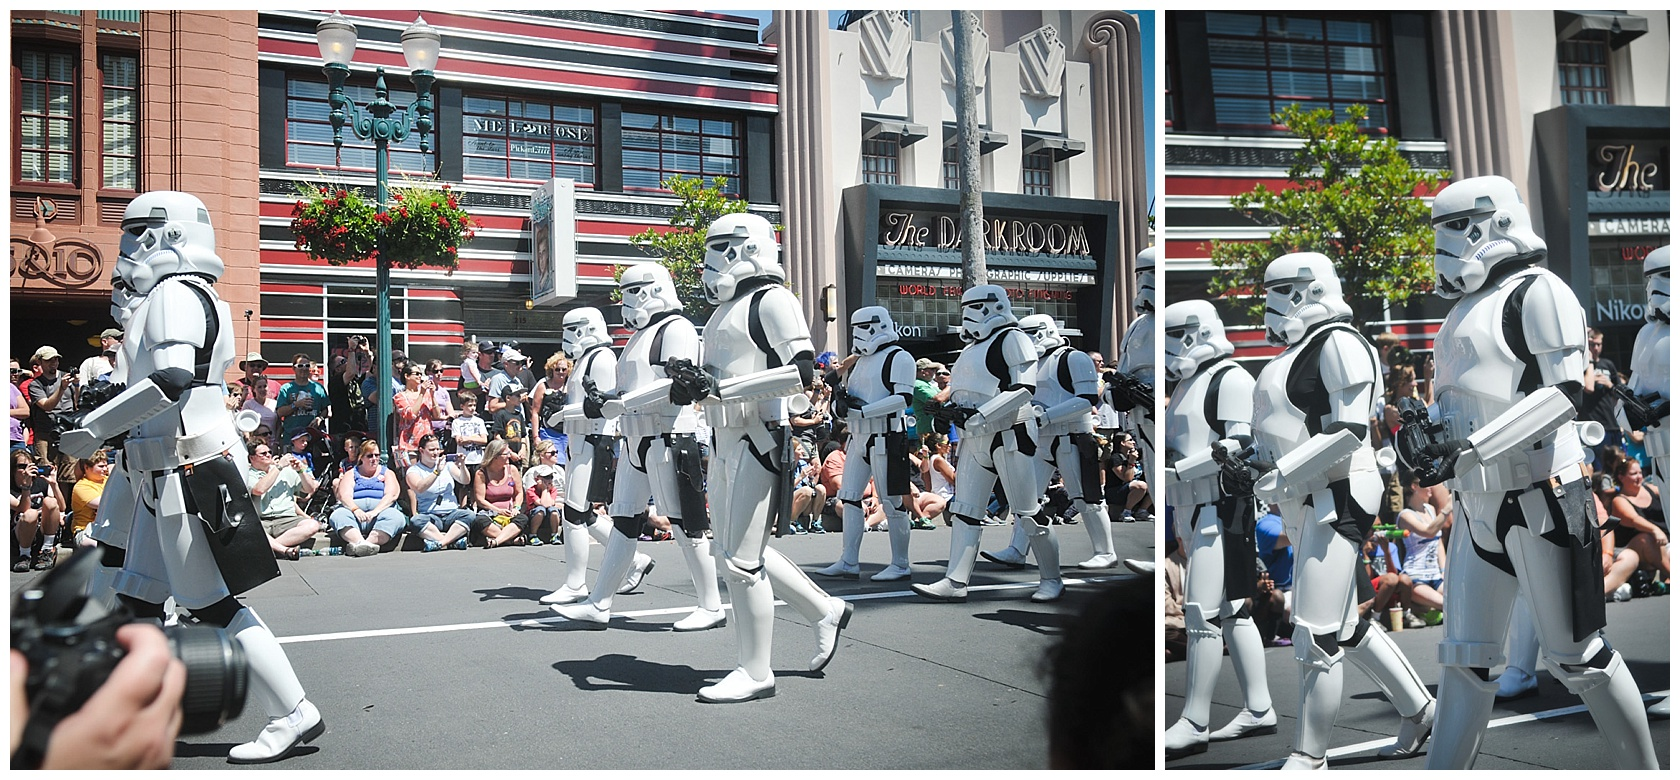 Tons of storm troopers!